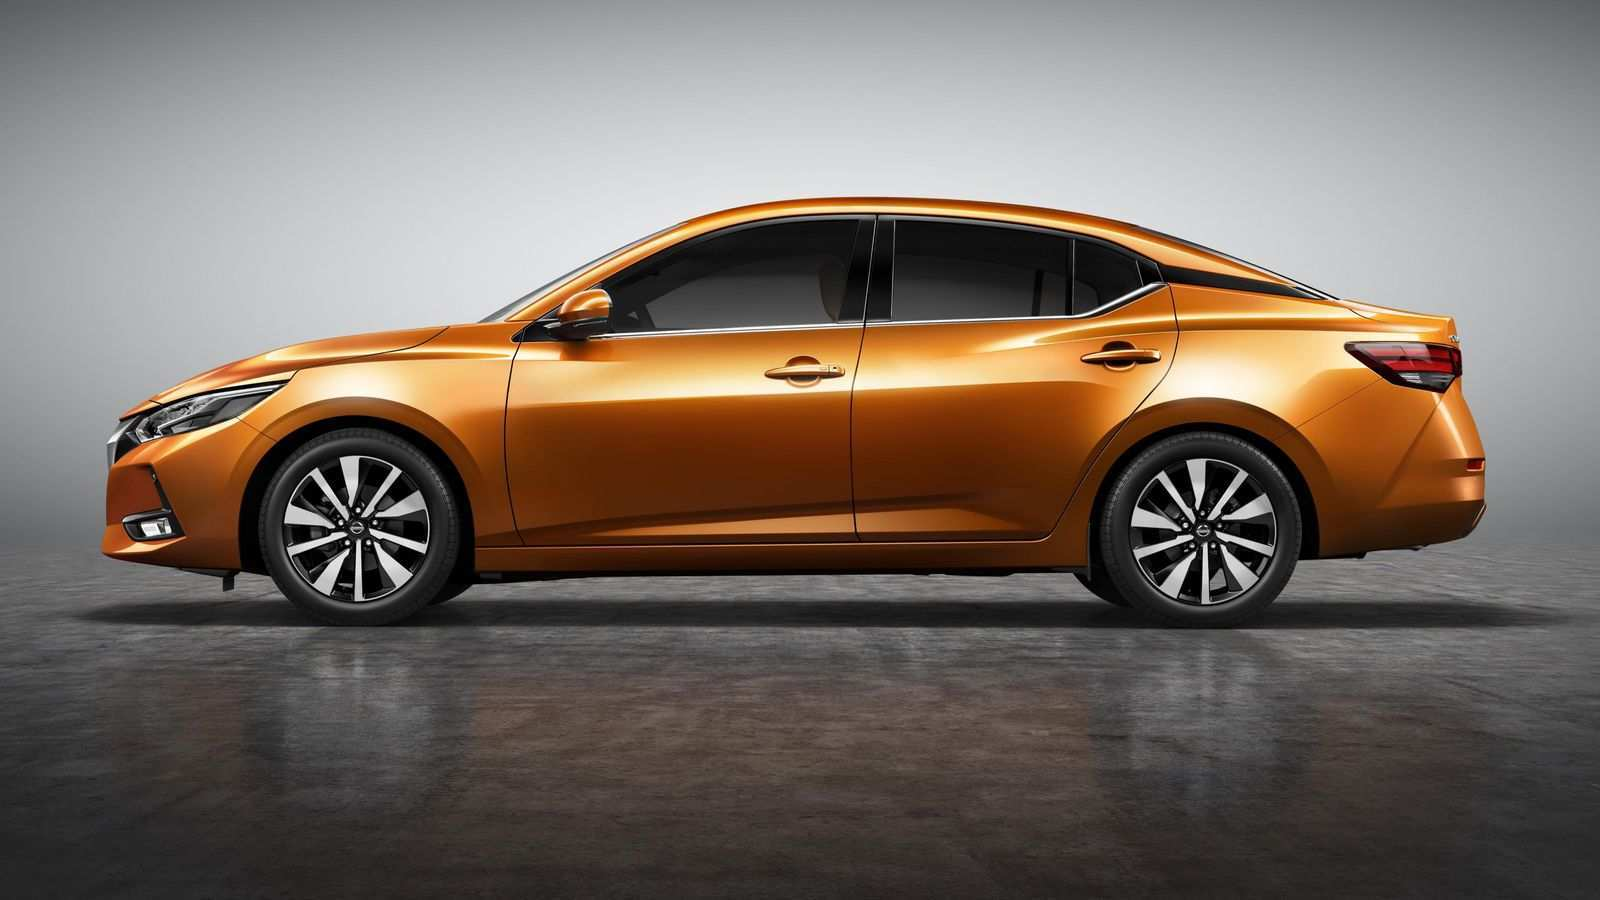 68 The Best Nissan Sylphy 2020 Style